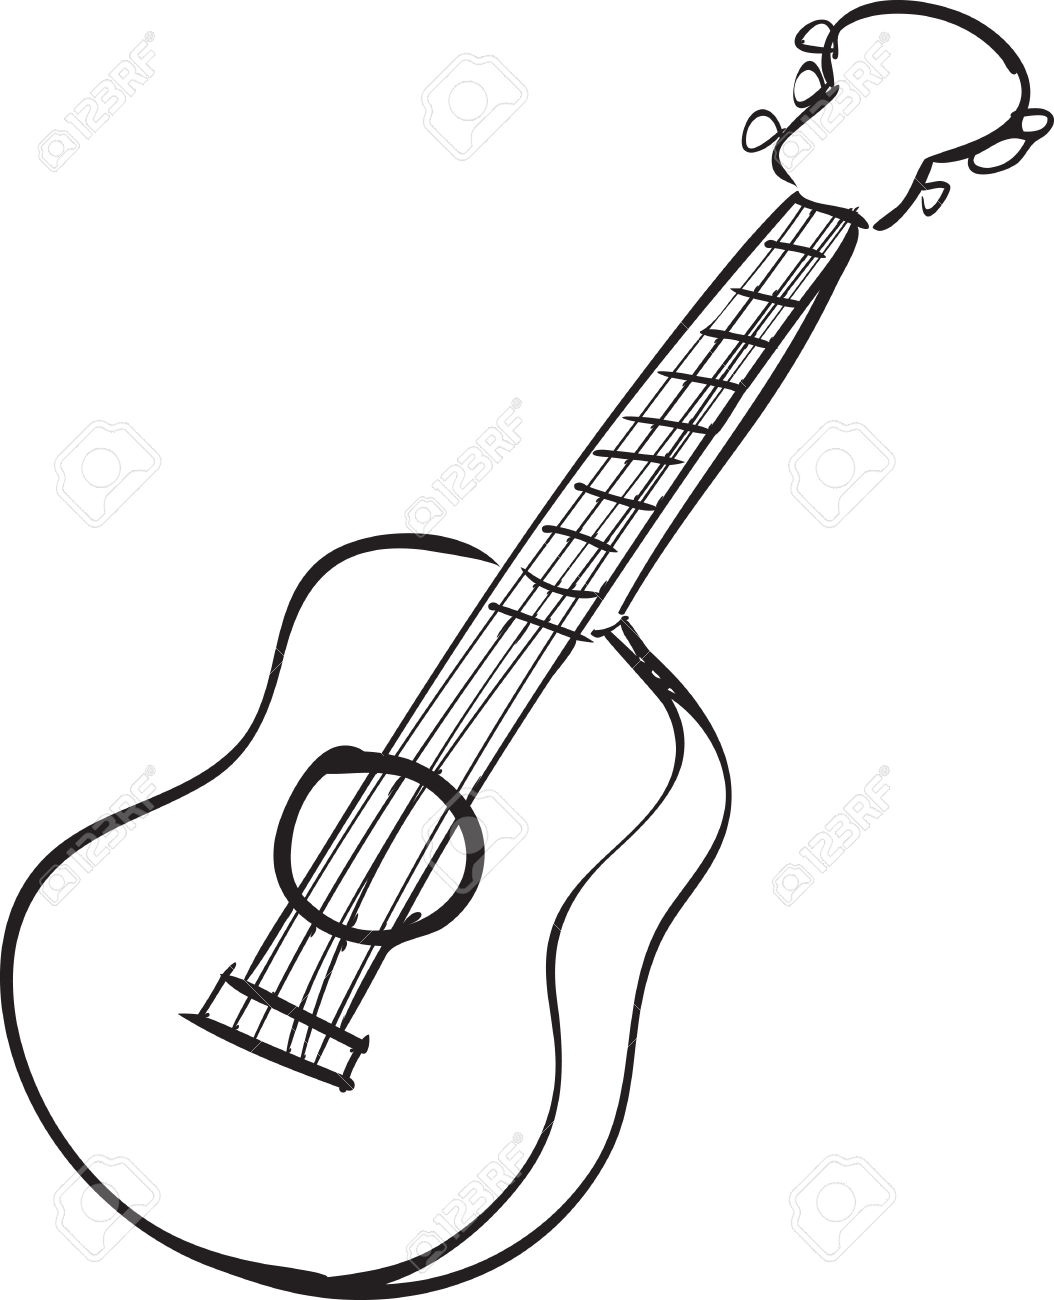 1054x1300 Sketch clipart guitar